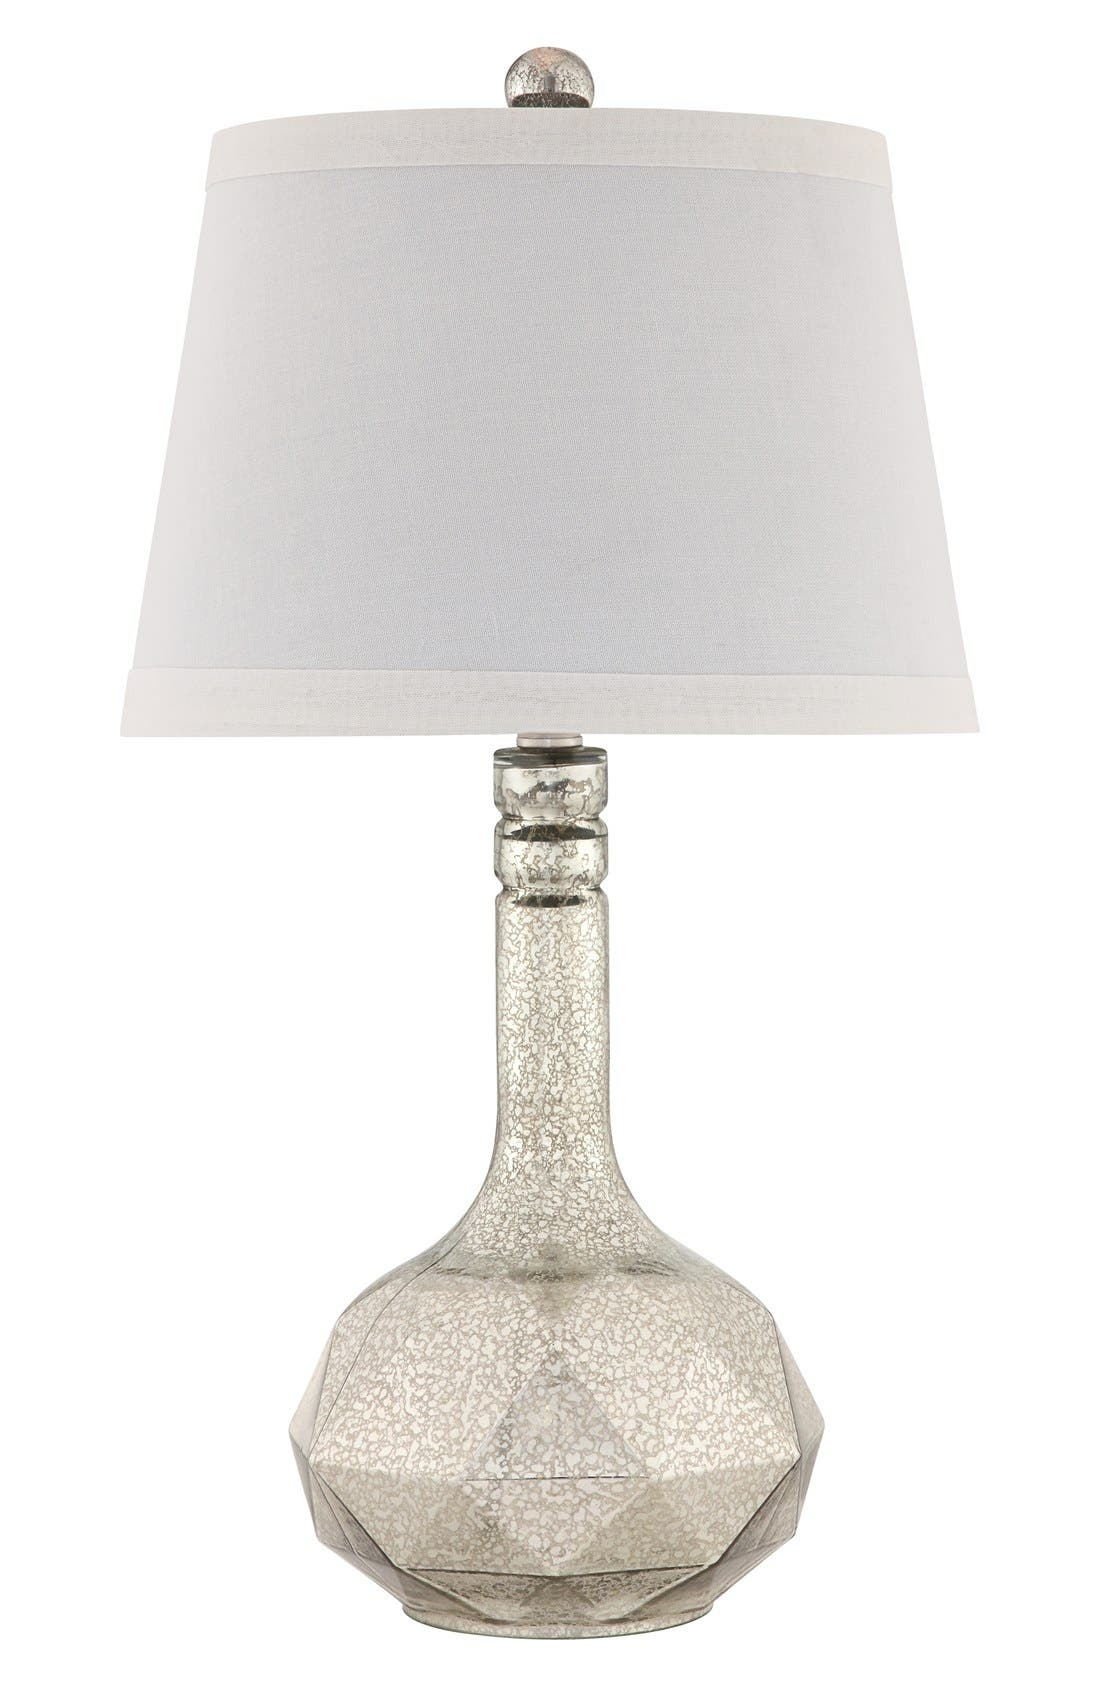 Mercury Glass Table Lamp,                             Main thumbnail 1, color,                             040